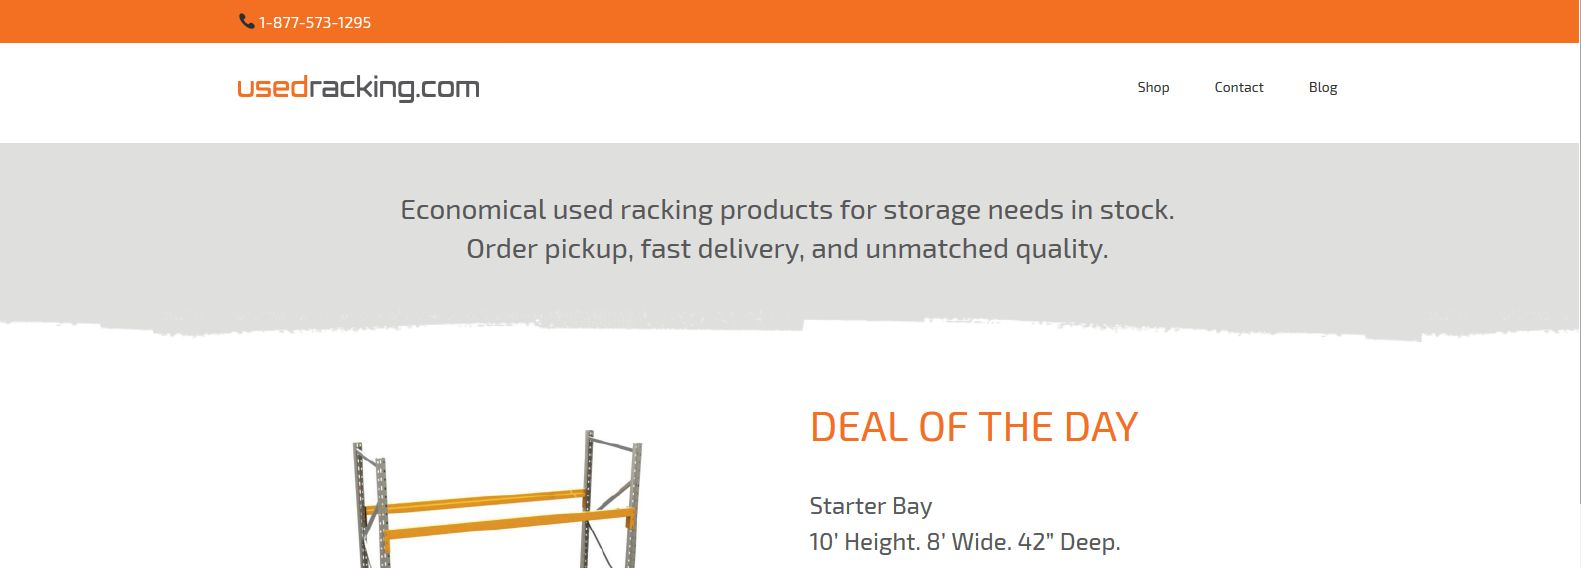 Used Racking Com Economical used racking products for storage needs